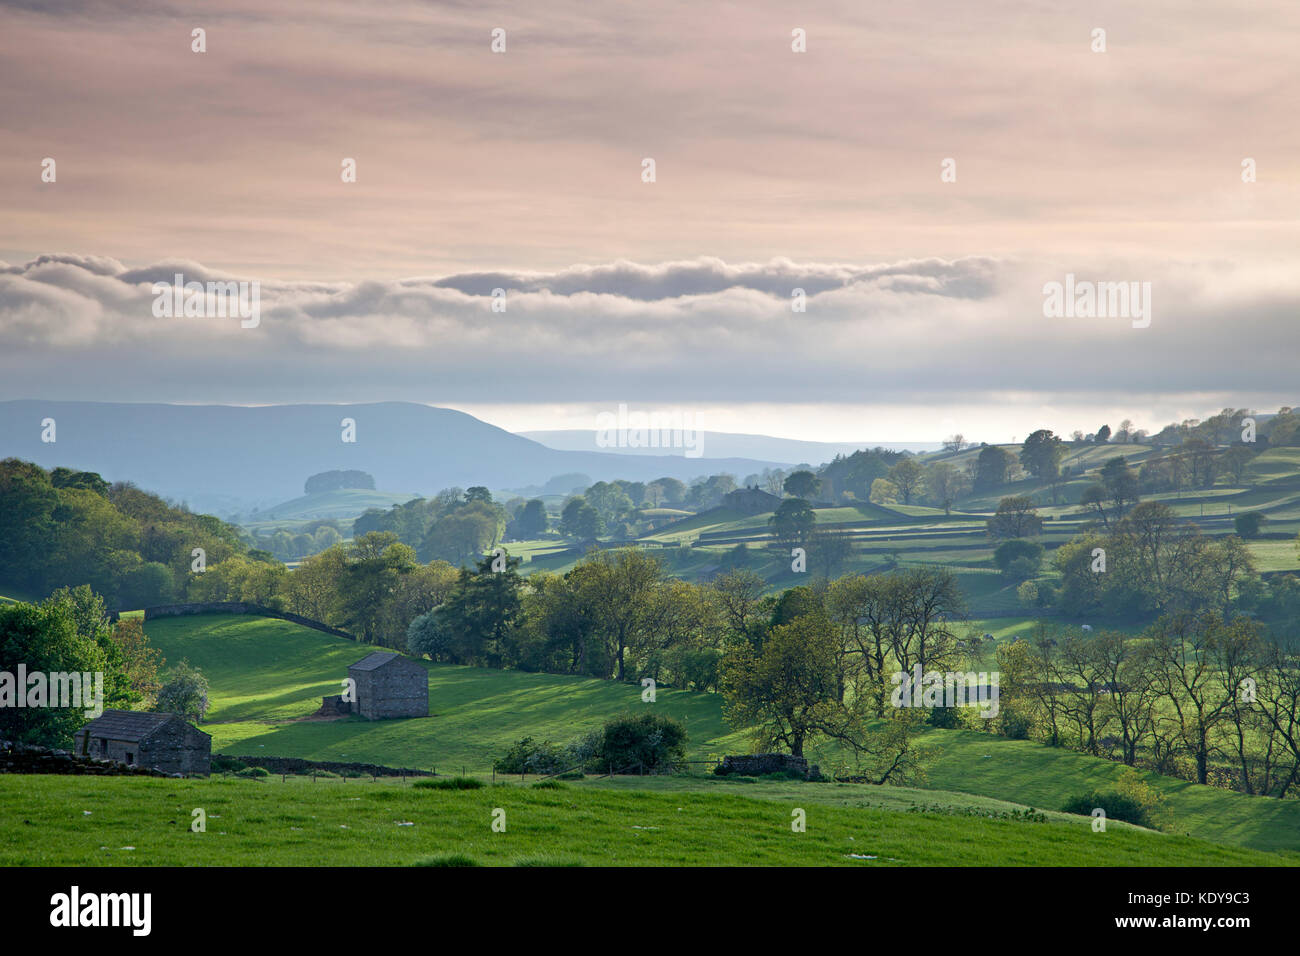 An evening view of Wensleydale in Yorkshire, taken from the A684 near Bainbridge. Stock Photo